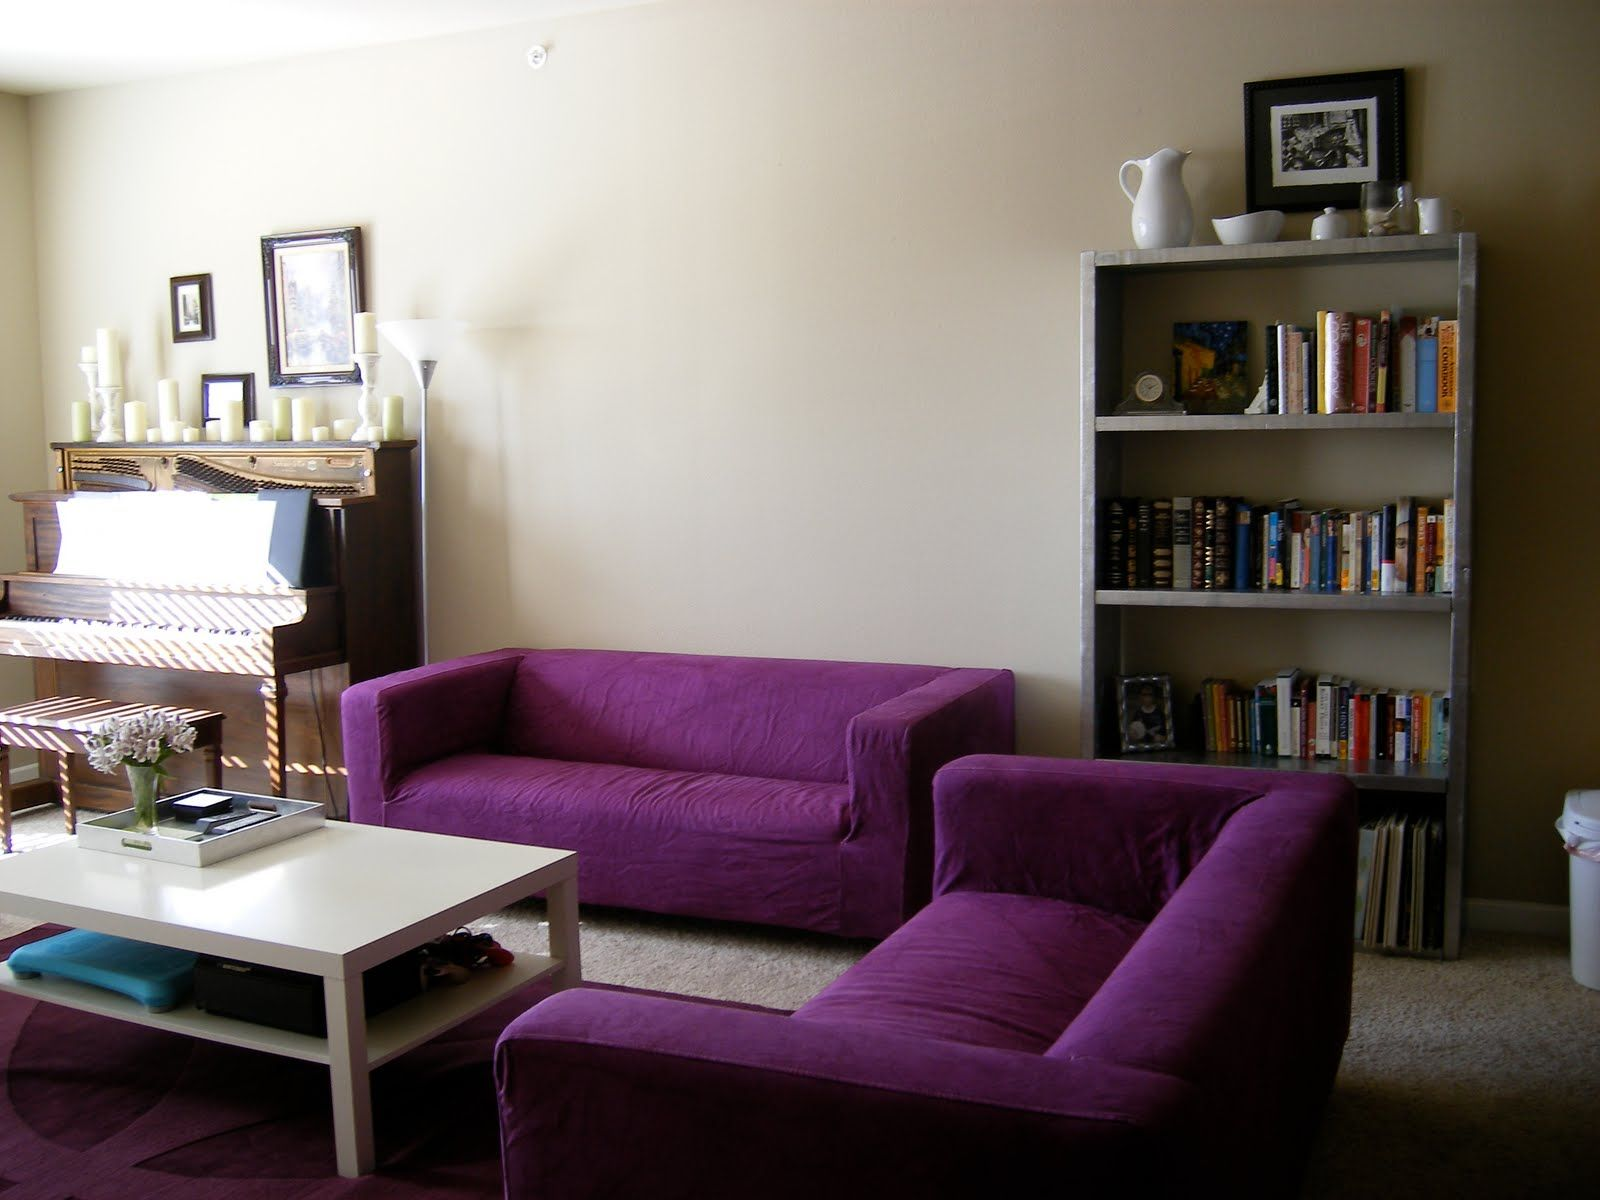 Purple couch, white table, ikea